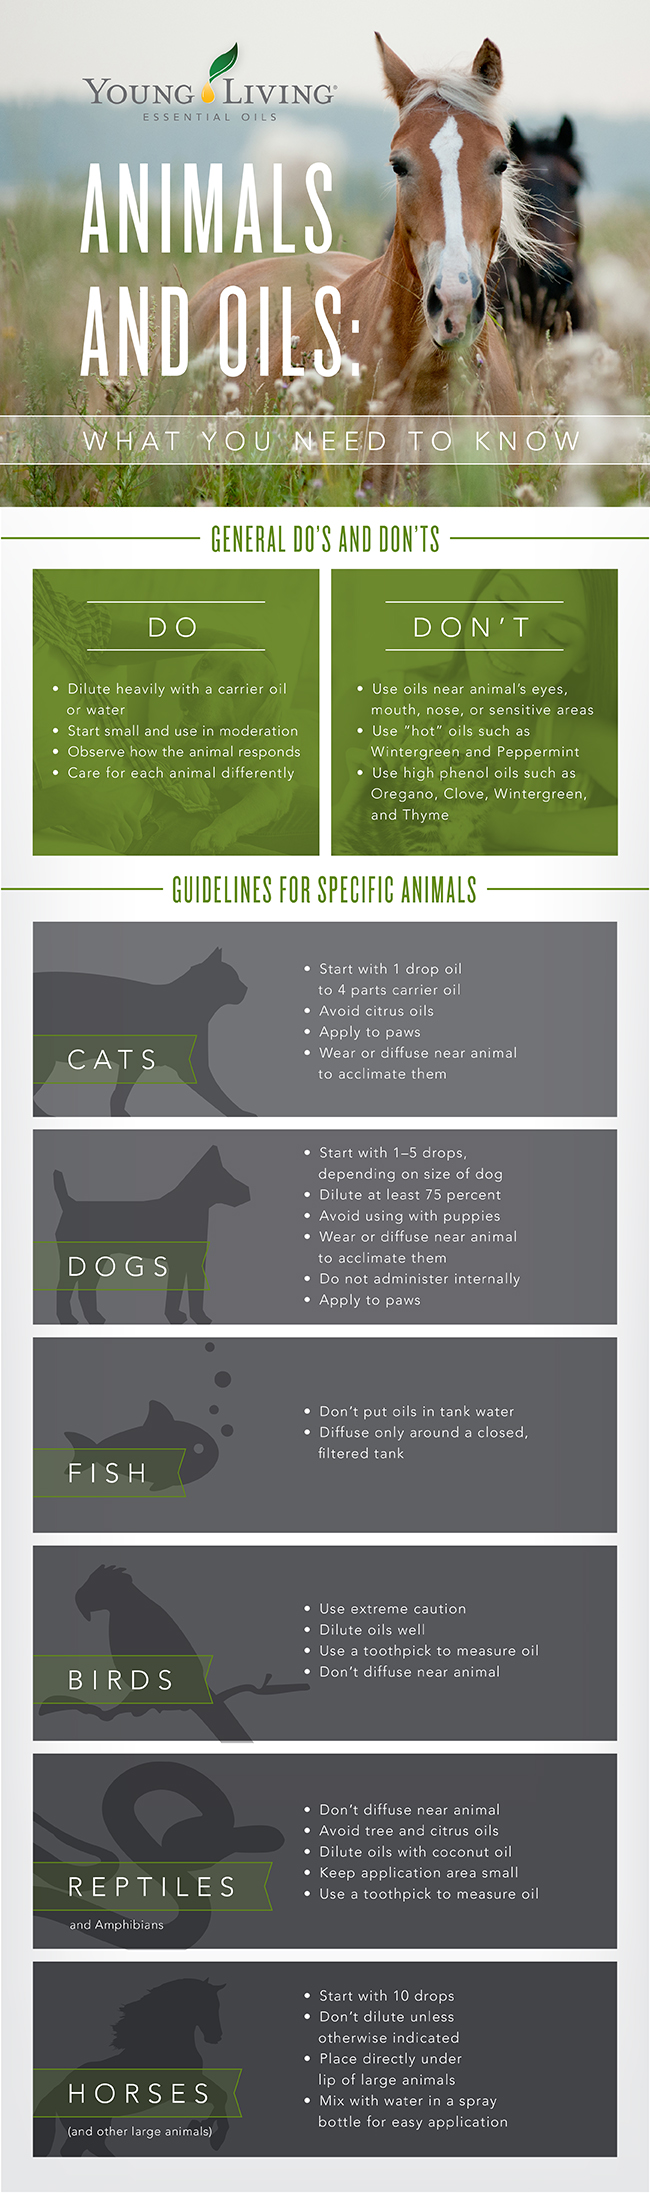 animals-and-pet-infographic.jpg